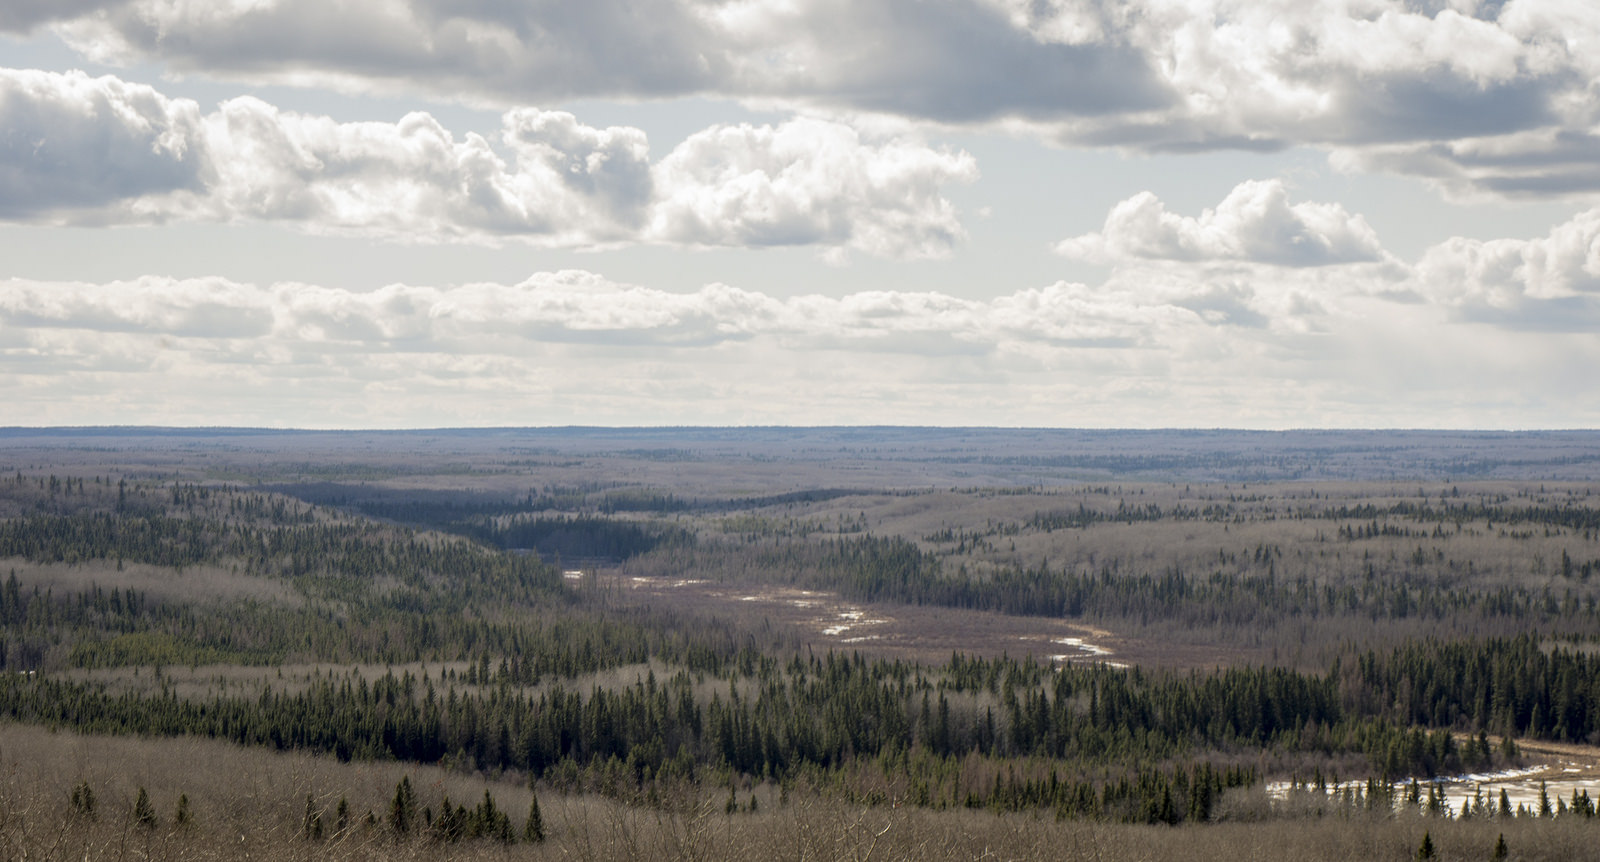 View of Beartrap Creek from the Height-of-Land Lookout Tower in early spring, Prince Albert National Park. This marks a boundary where all south-flowing waters enter the Saskatchewan River, and all north-flowing waters enter the Churchill River.